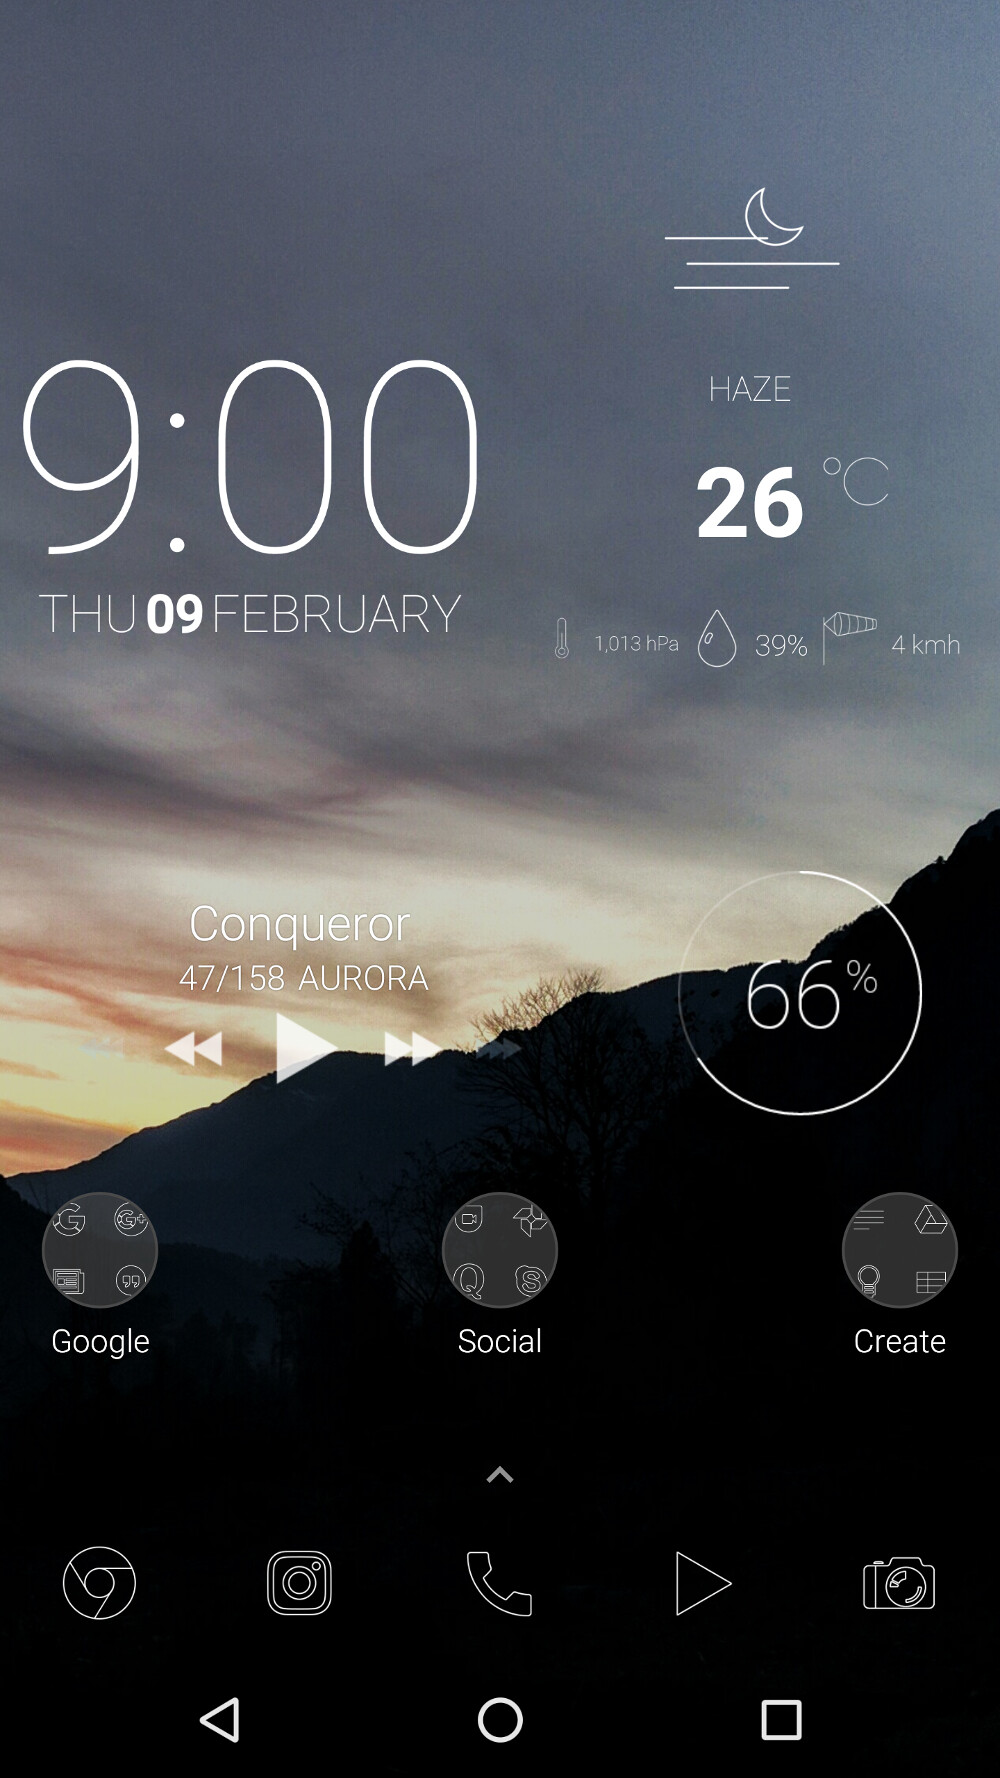 10 amazing Android home screen designs that will inspire you #4